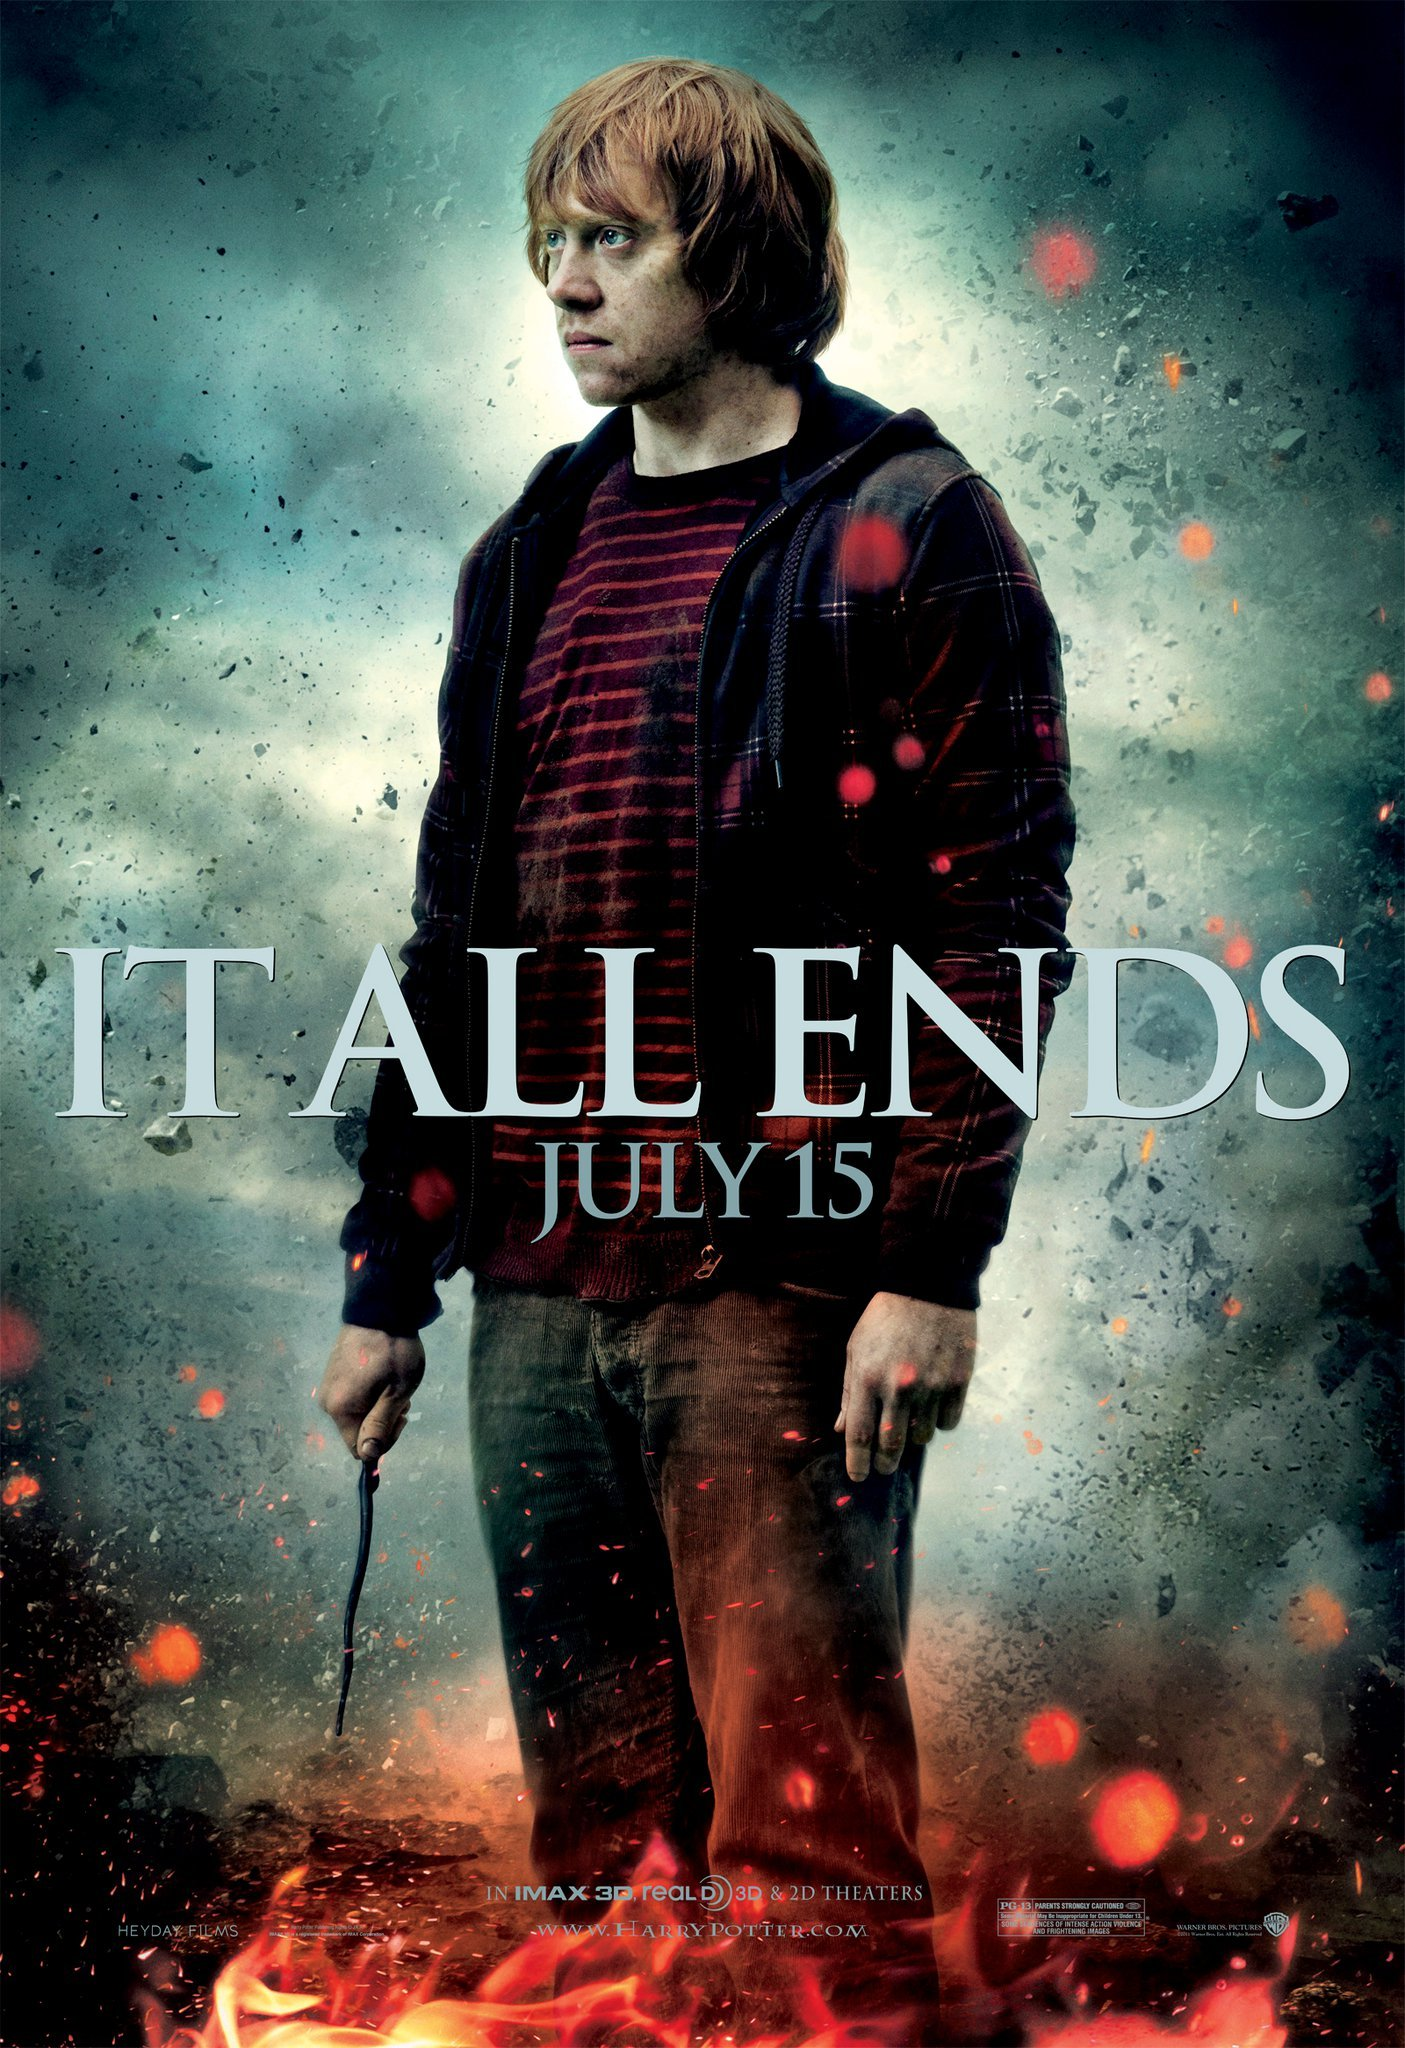 'Deathly Hallows: Part 2' Ron poster #3